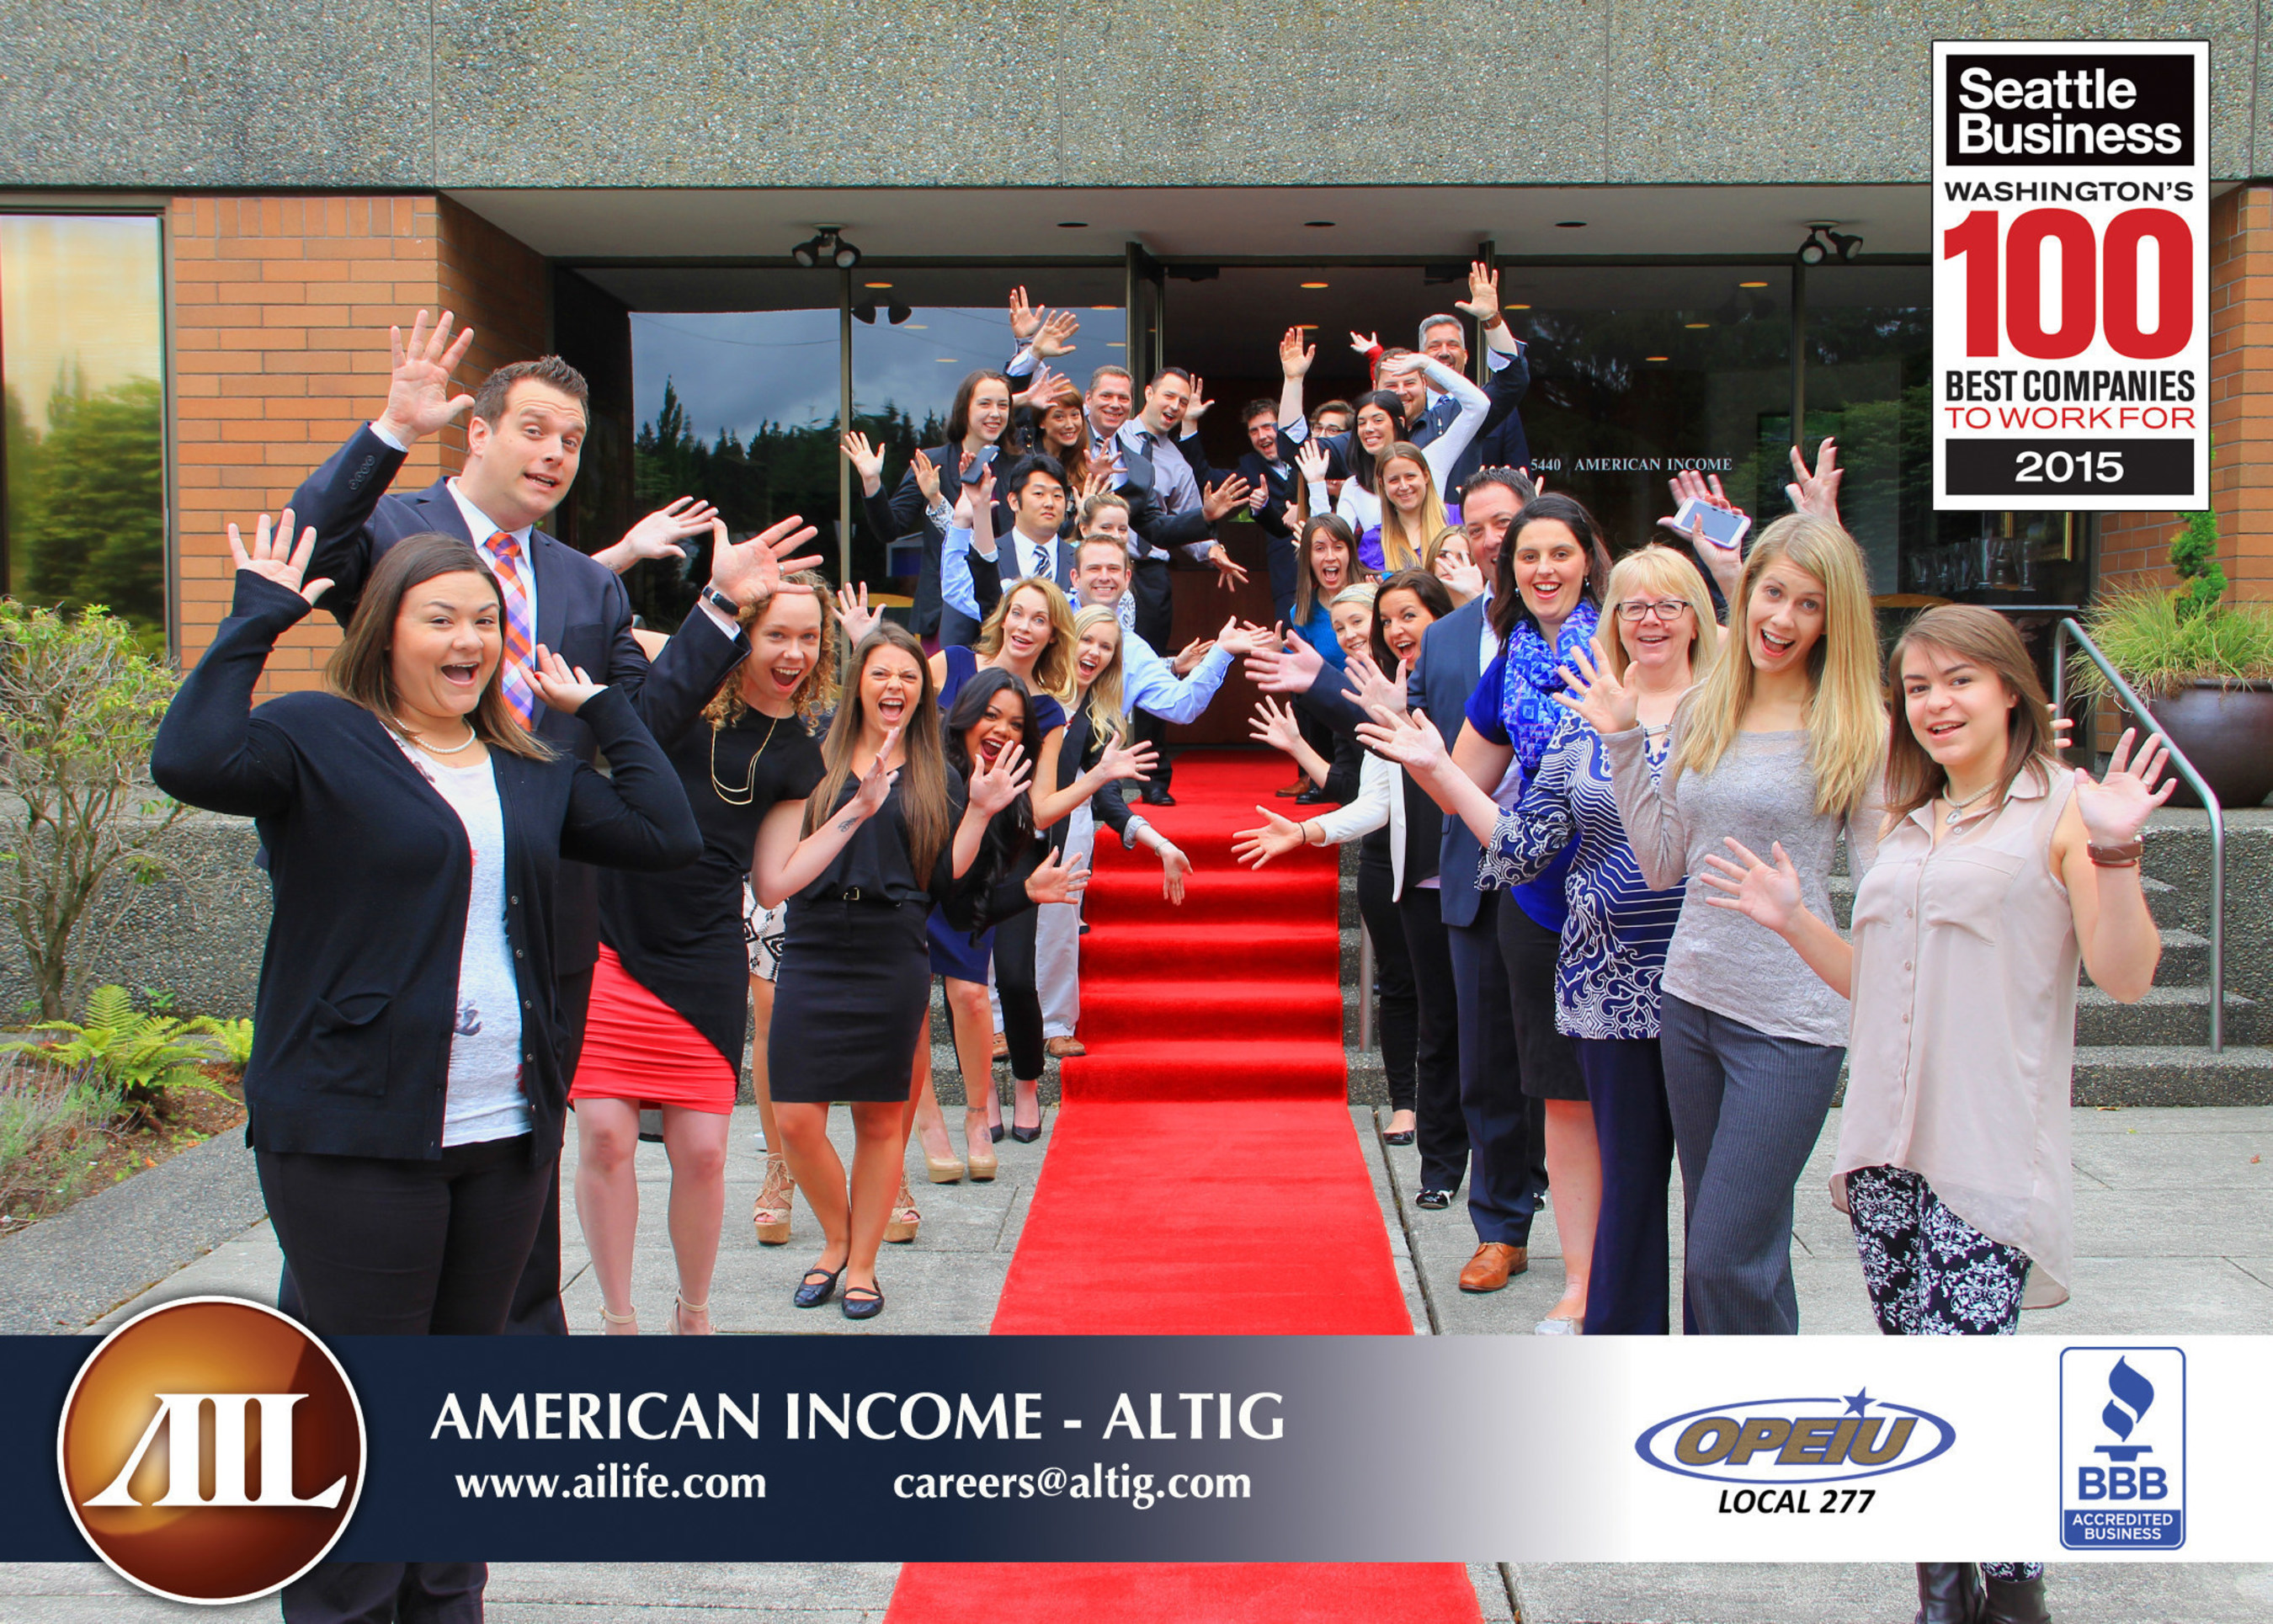 American Income Life - Altig named 2015 11th Best Company to Work For by Seattle Business magazine.